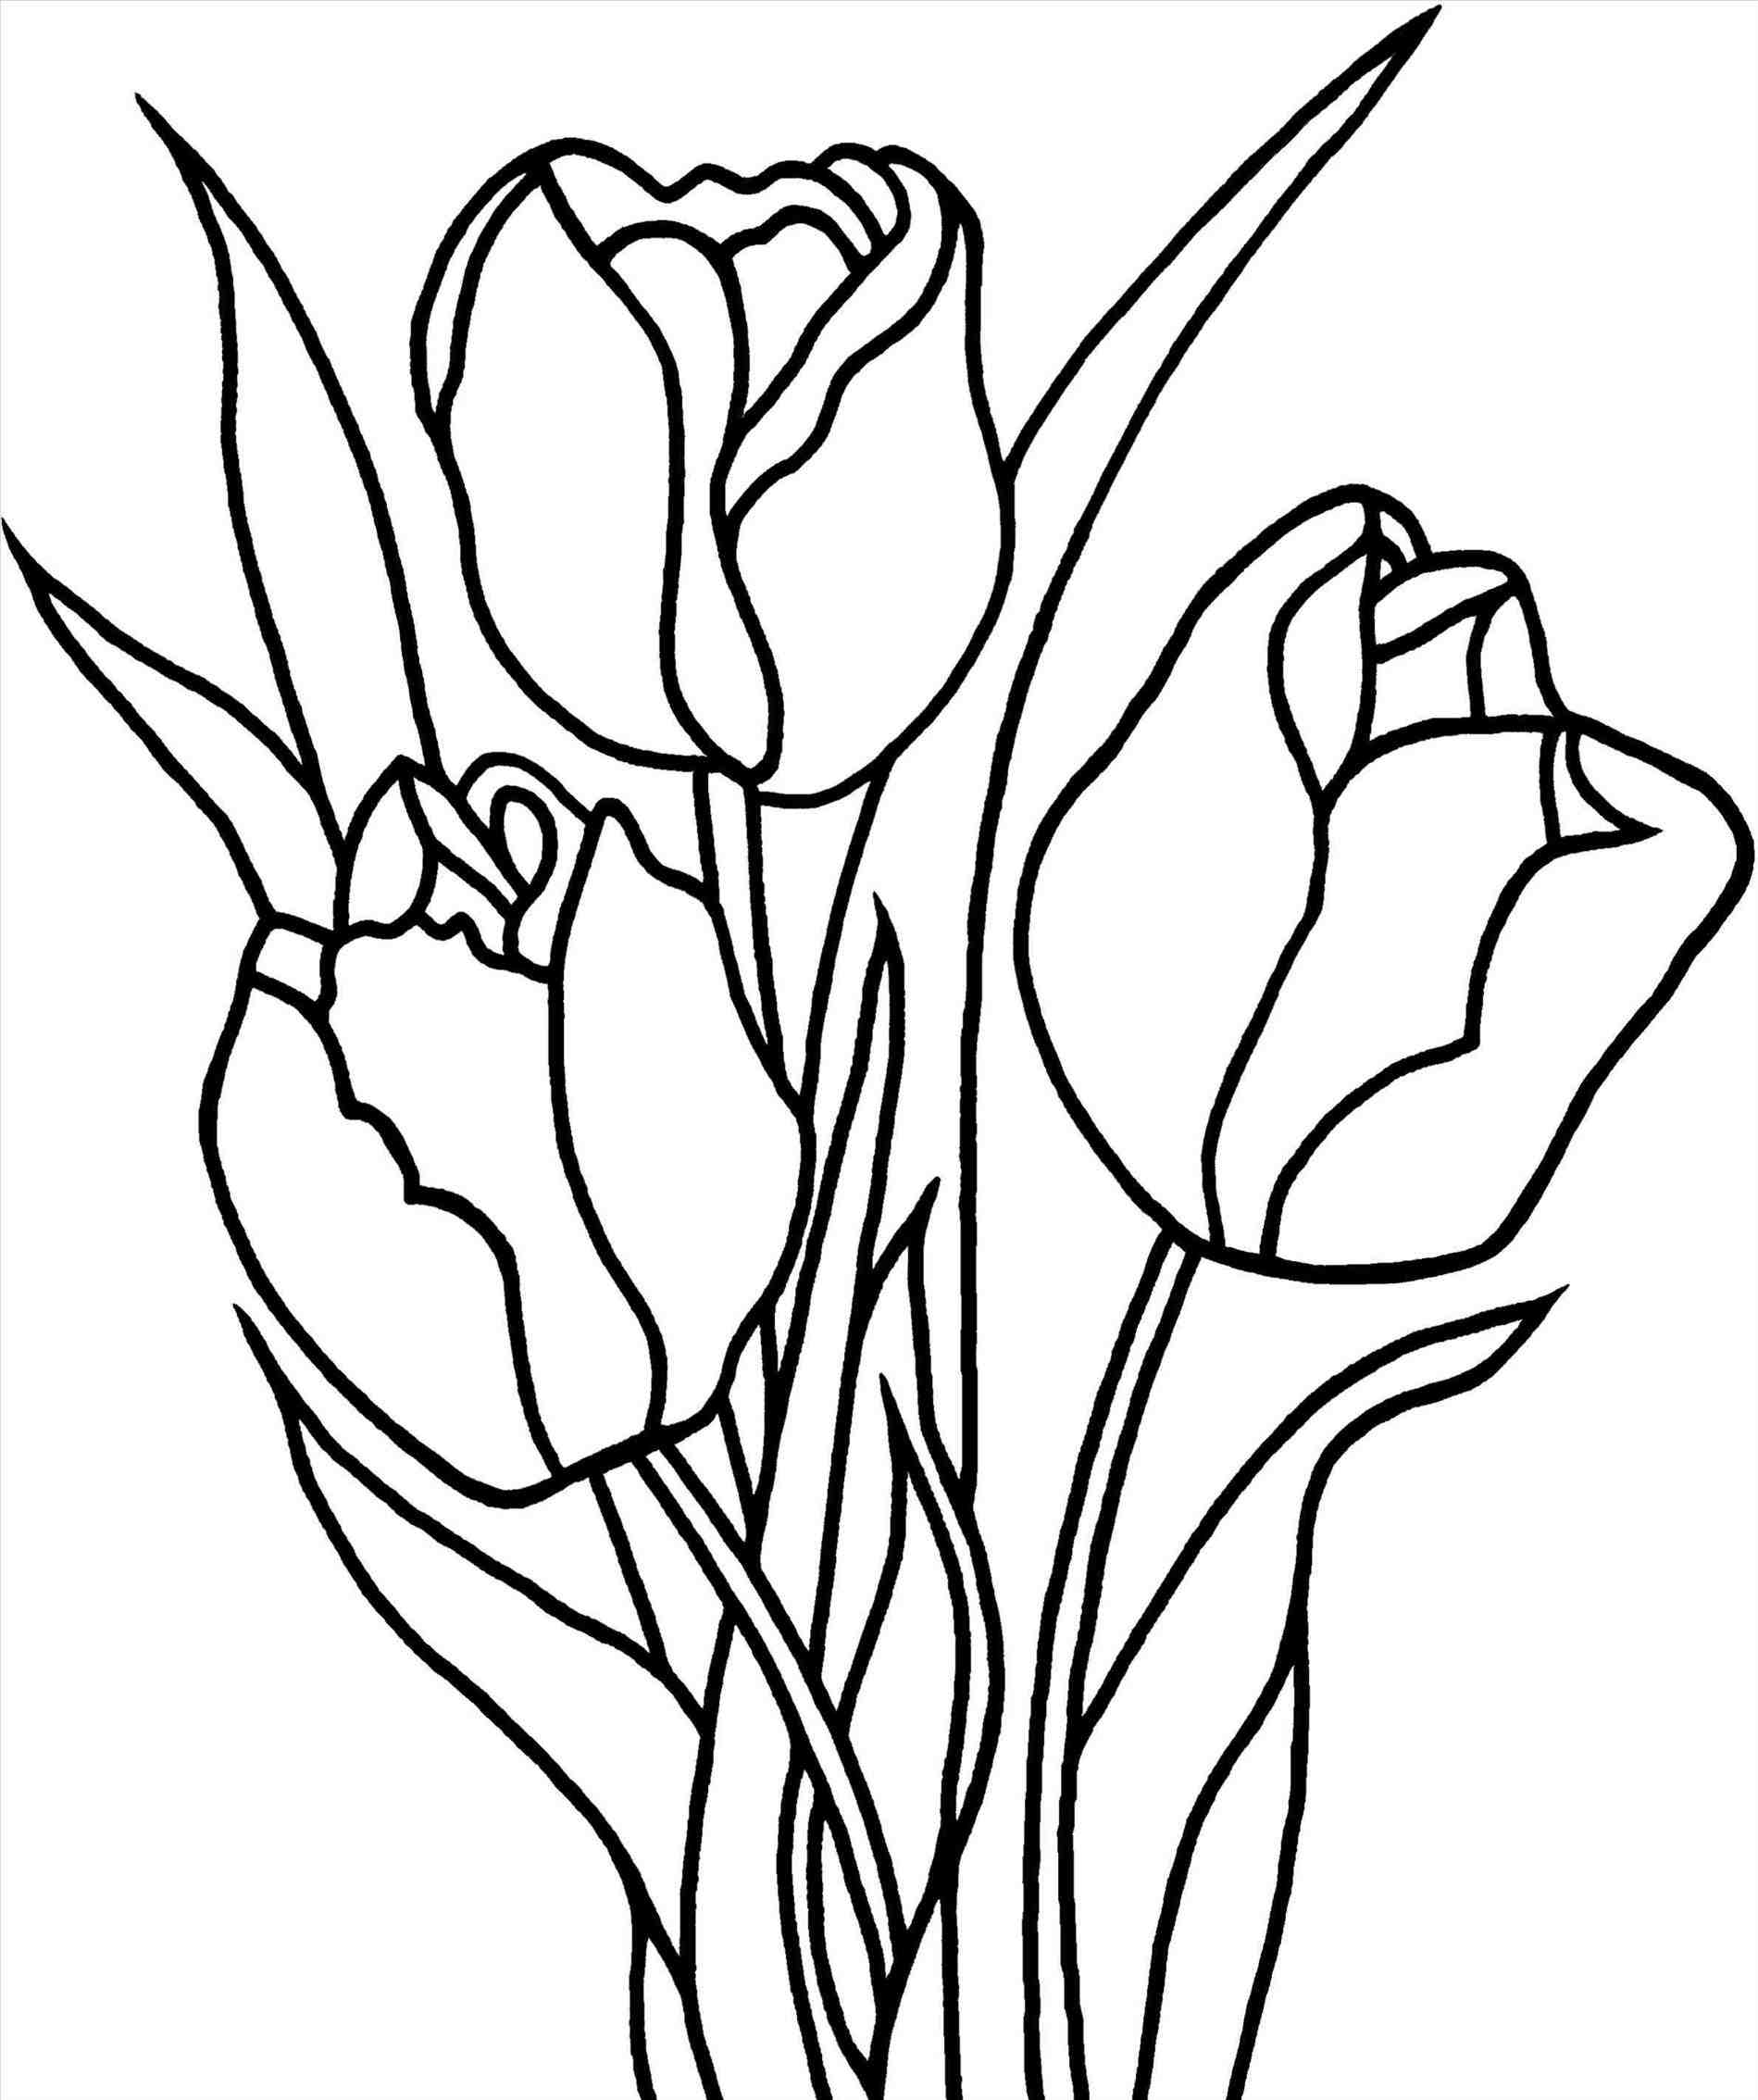 drawings of tulips tulips drawing clipart best tulips drawings of